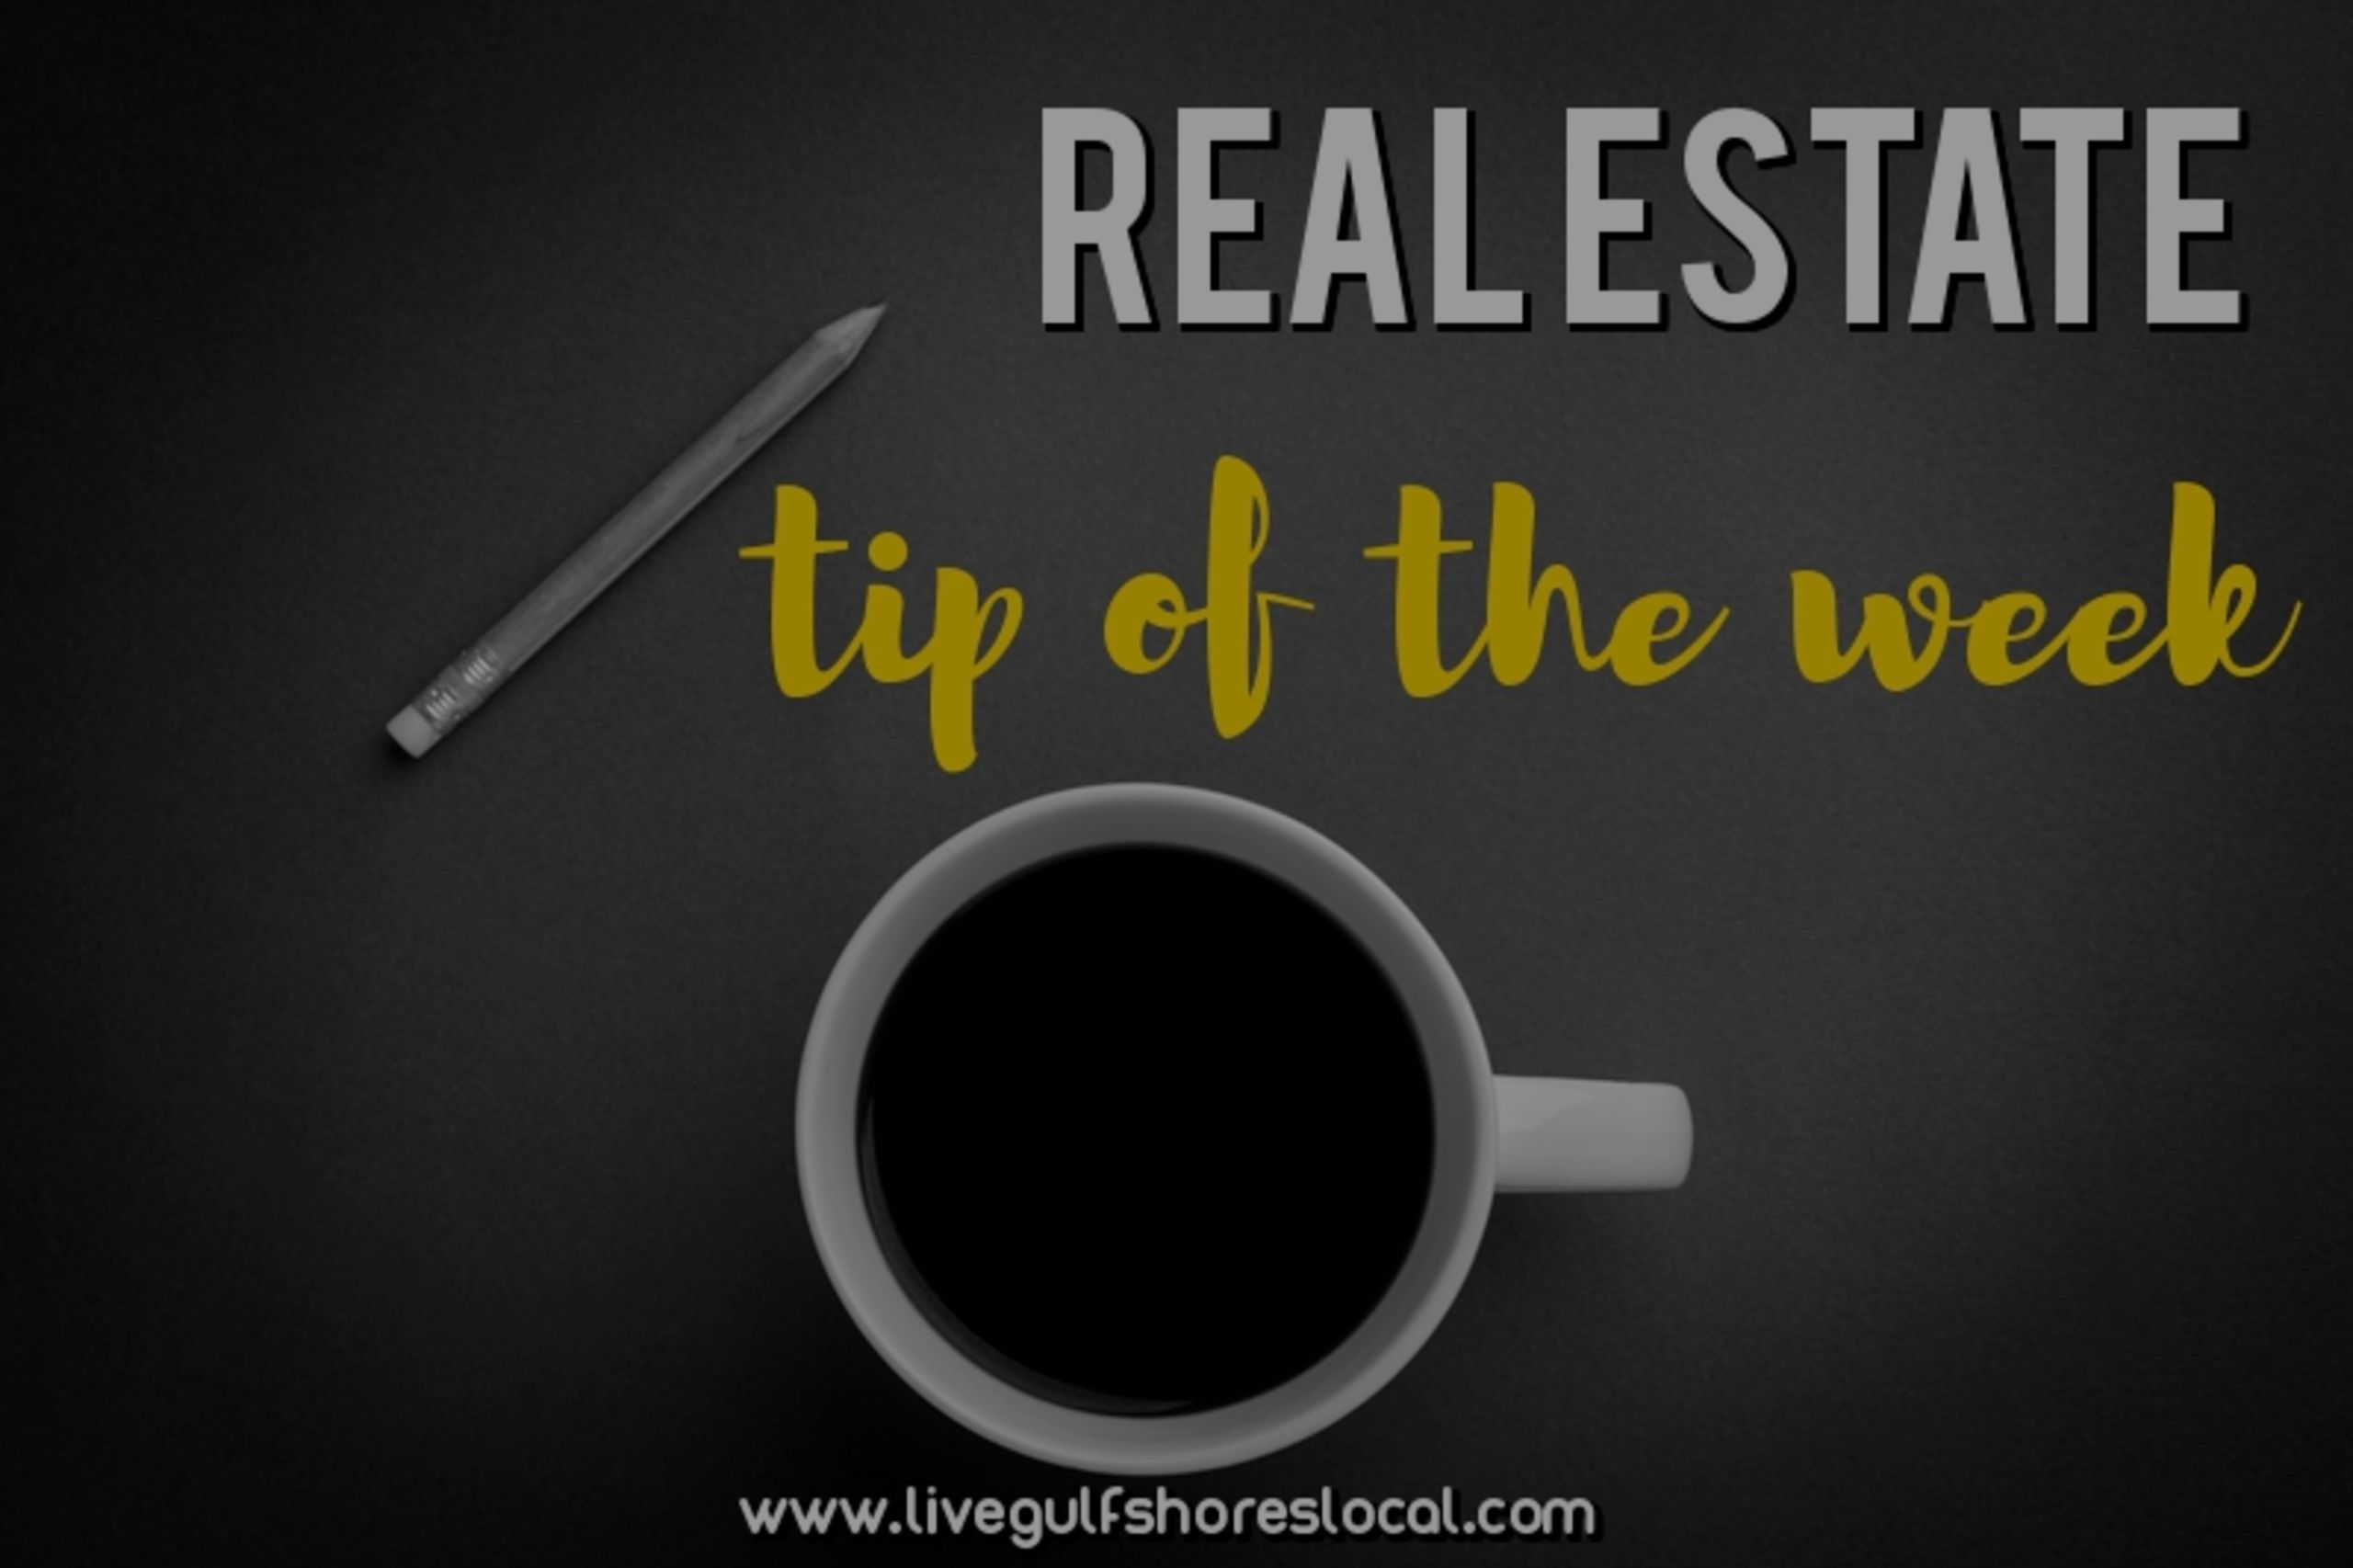 Real Estate Tip of the Week – 12/11/17 – Depersonalize to Sell